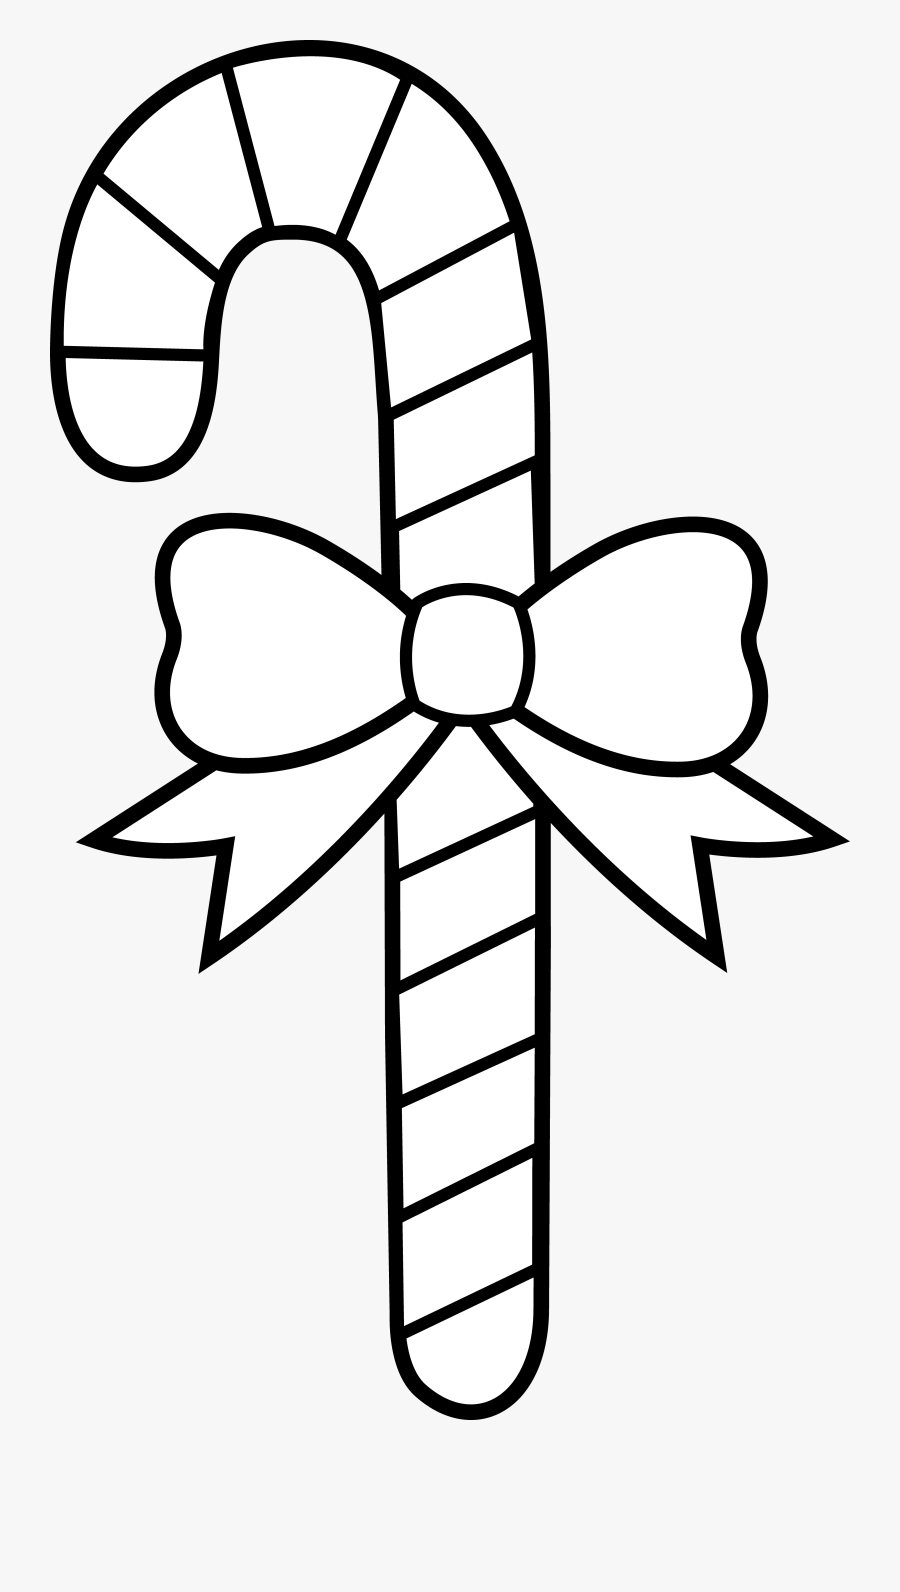 Christmas Outline Collection Tree - Christmas Drawings Candy Cane, Transparent Clipart